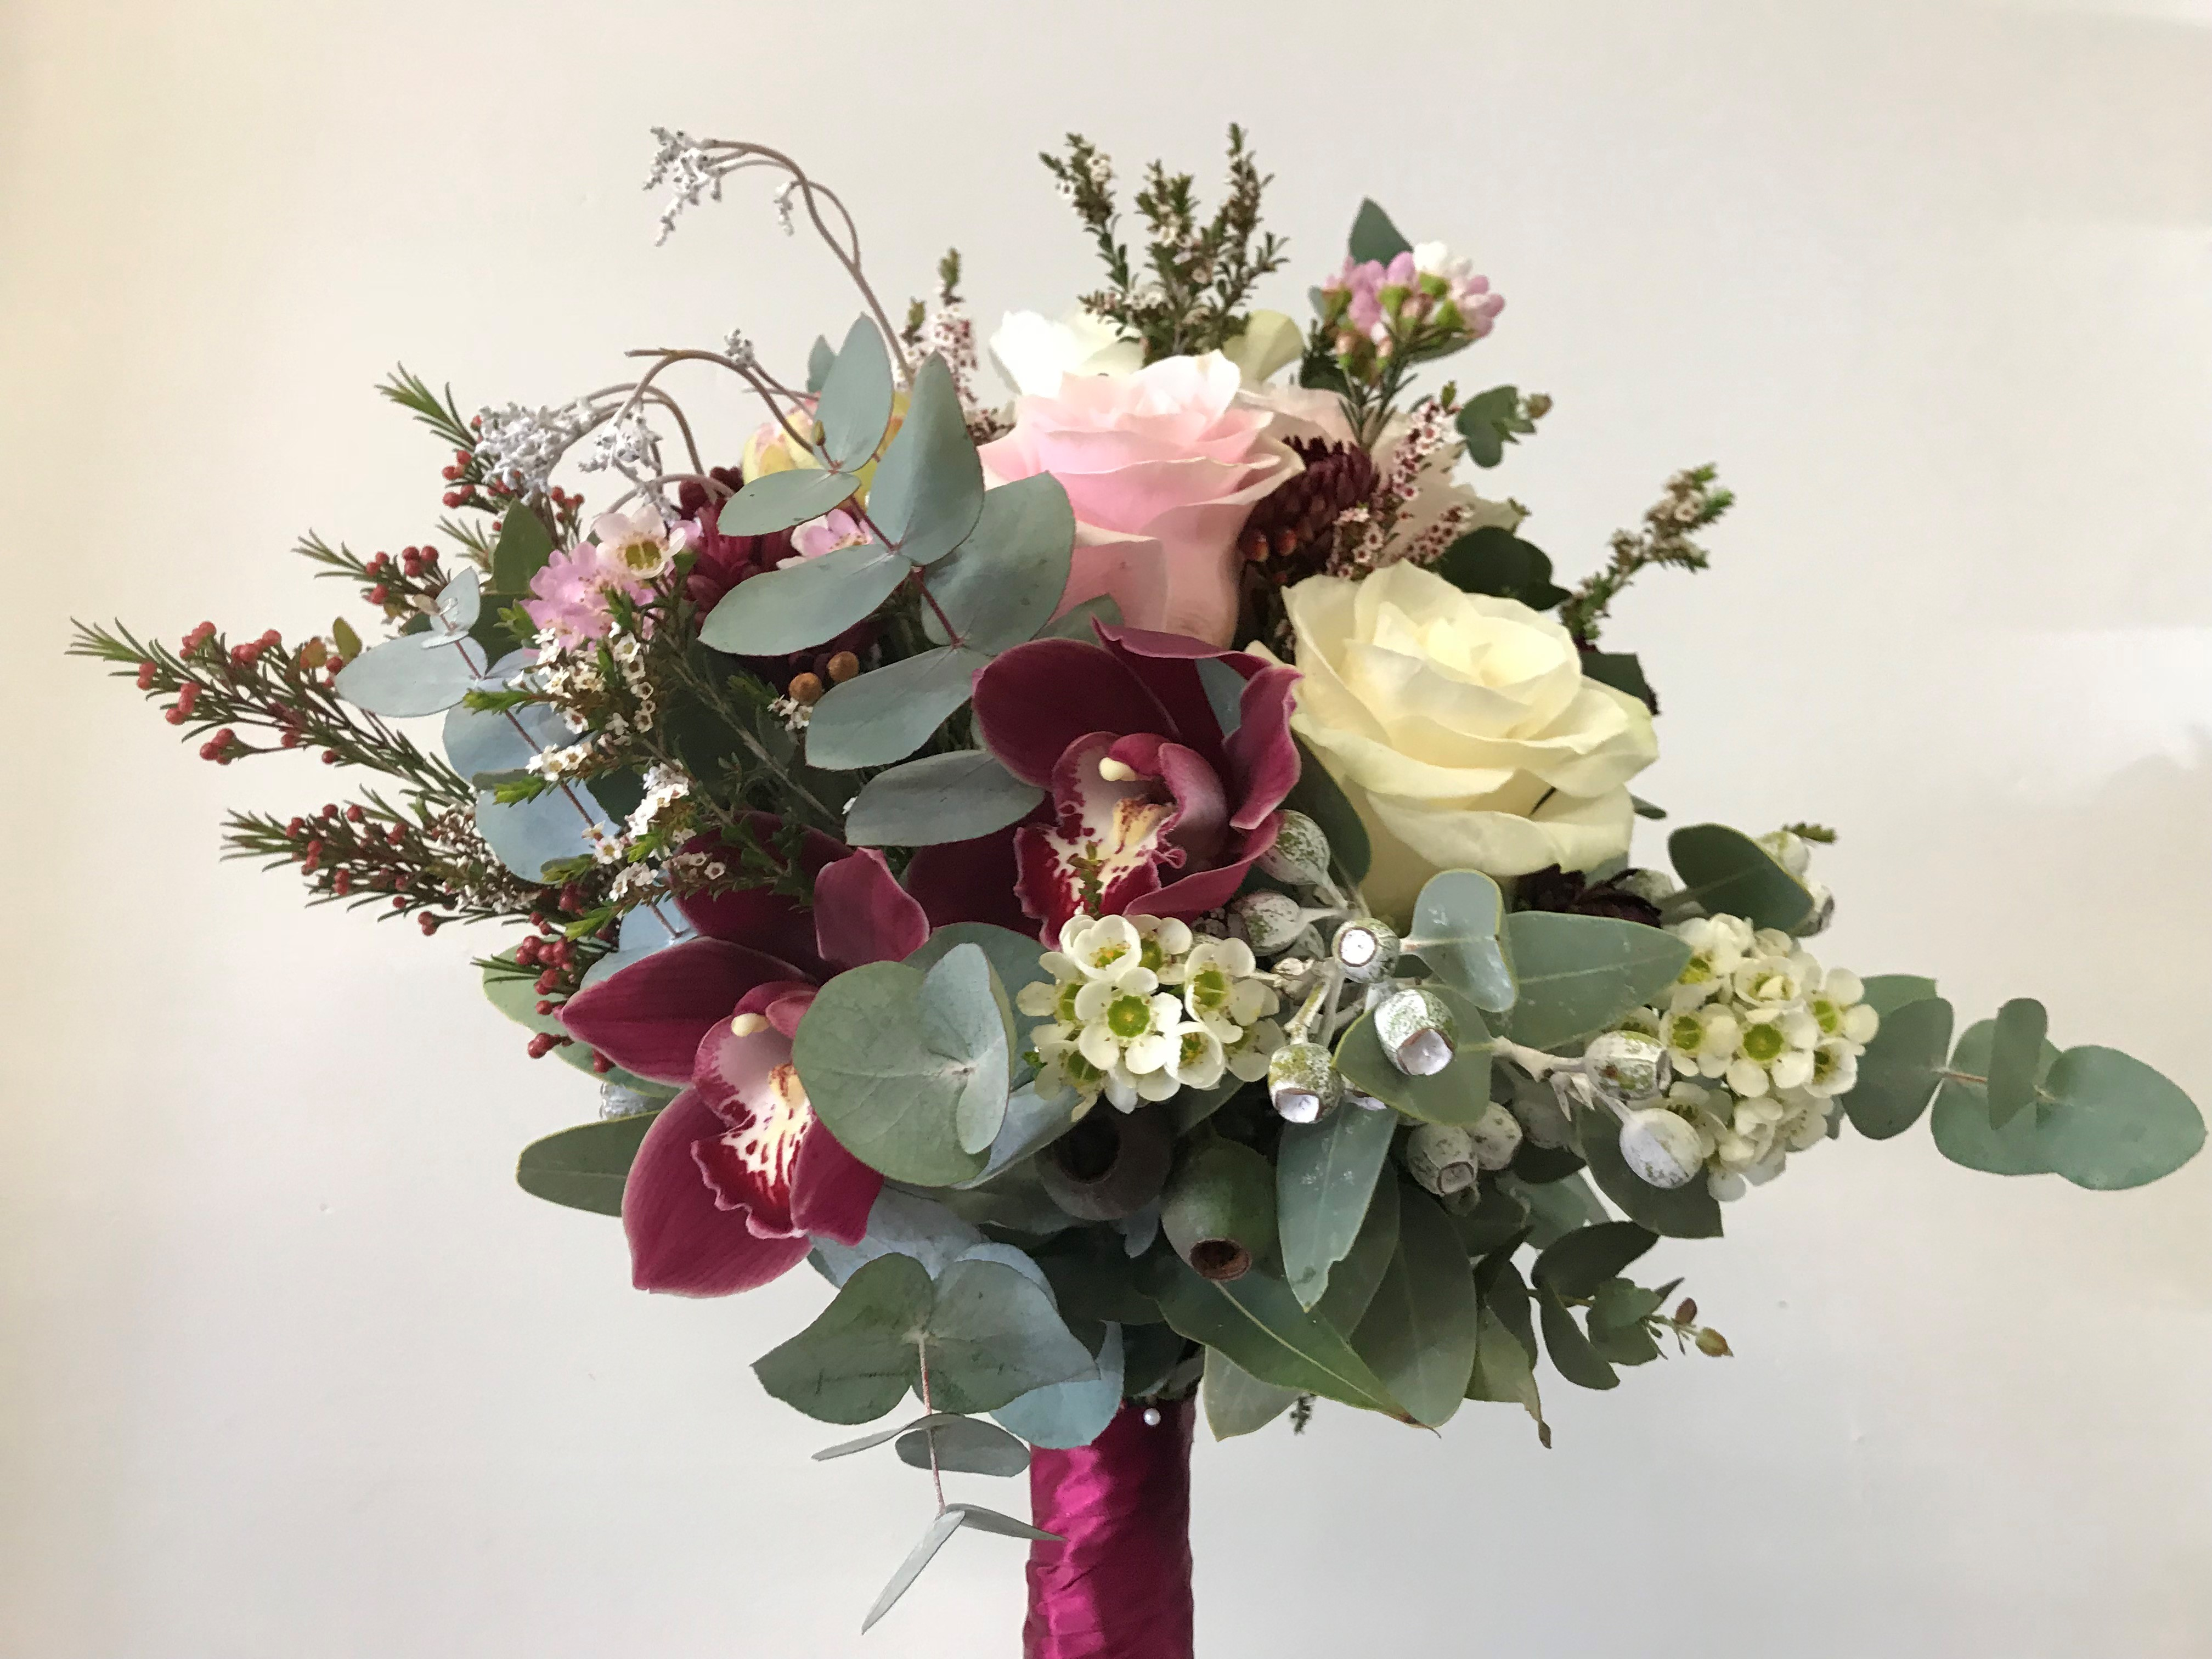 wedding bouquet, tamworth wedding, bridal bouquet, burgundy bouquet, tamworth weddings, tamworth florist, florist tamworth, tamworth wedding florist, boho bouquet, burgundy bouquet, bridesmaid bouquet